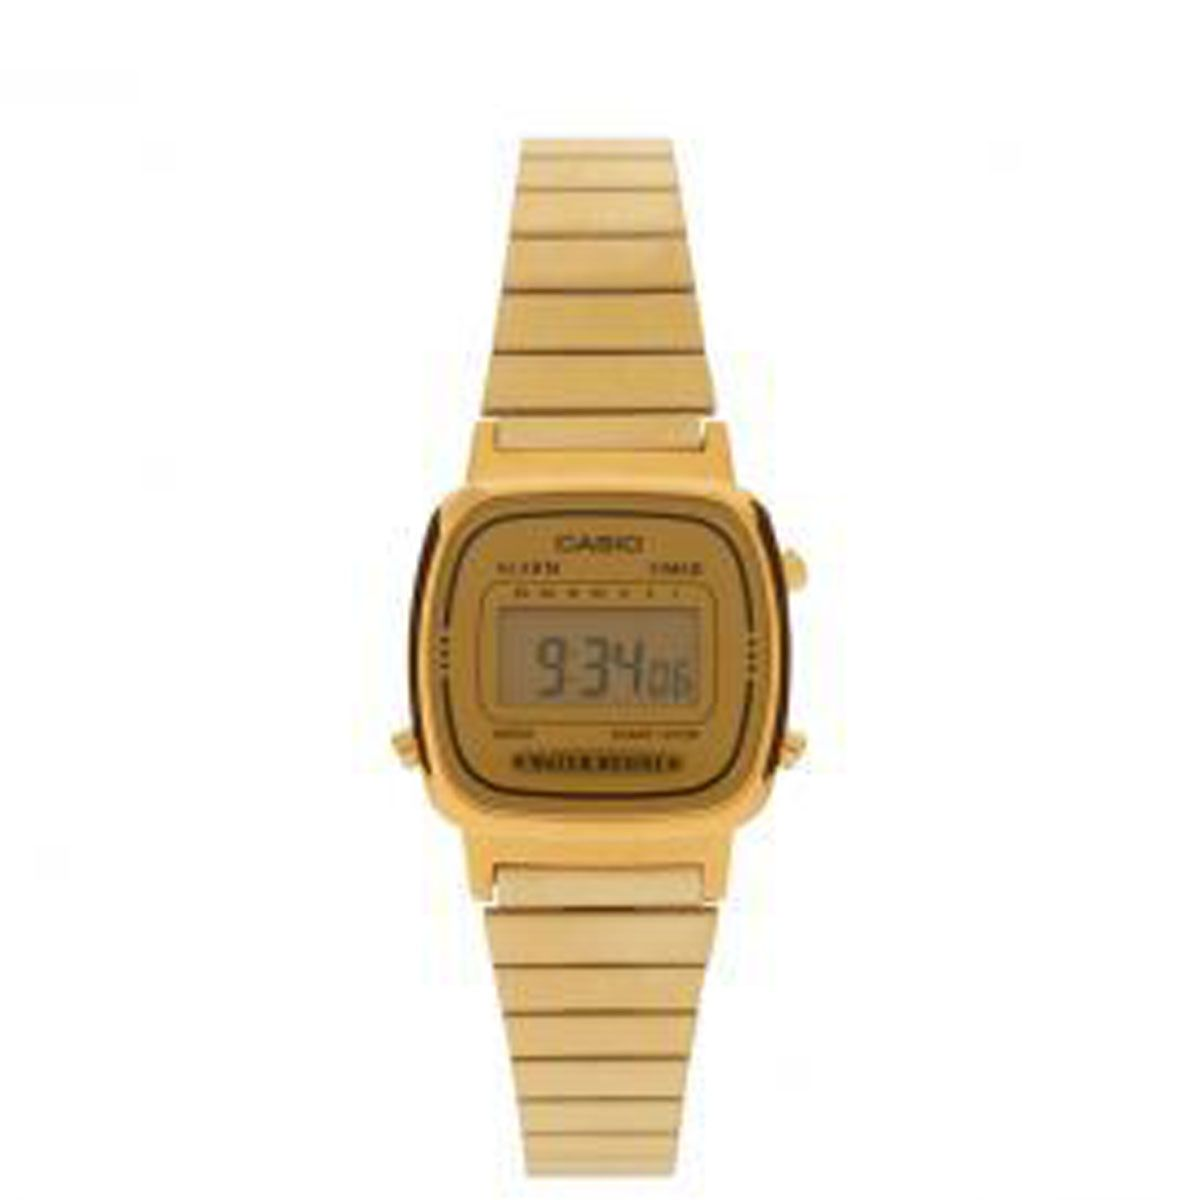 casio montre homme or